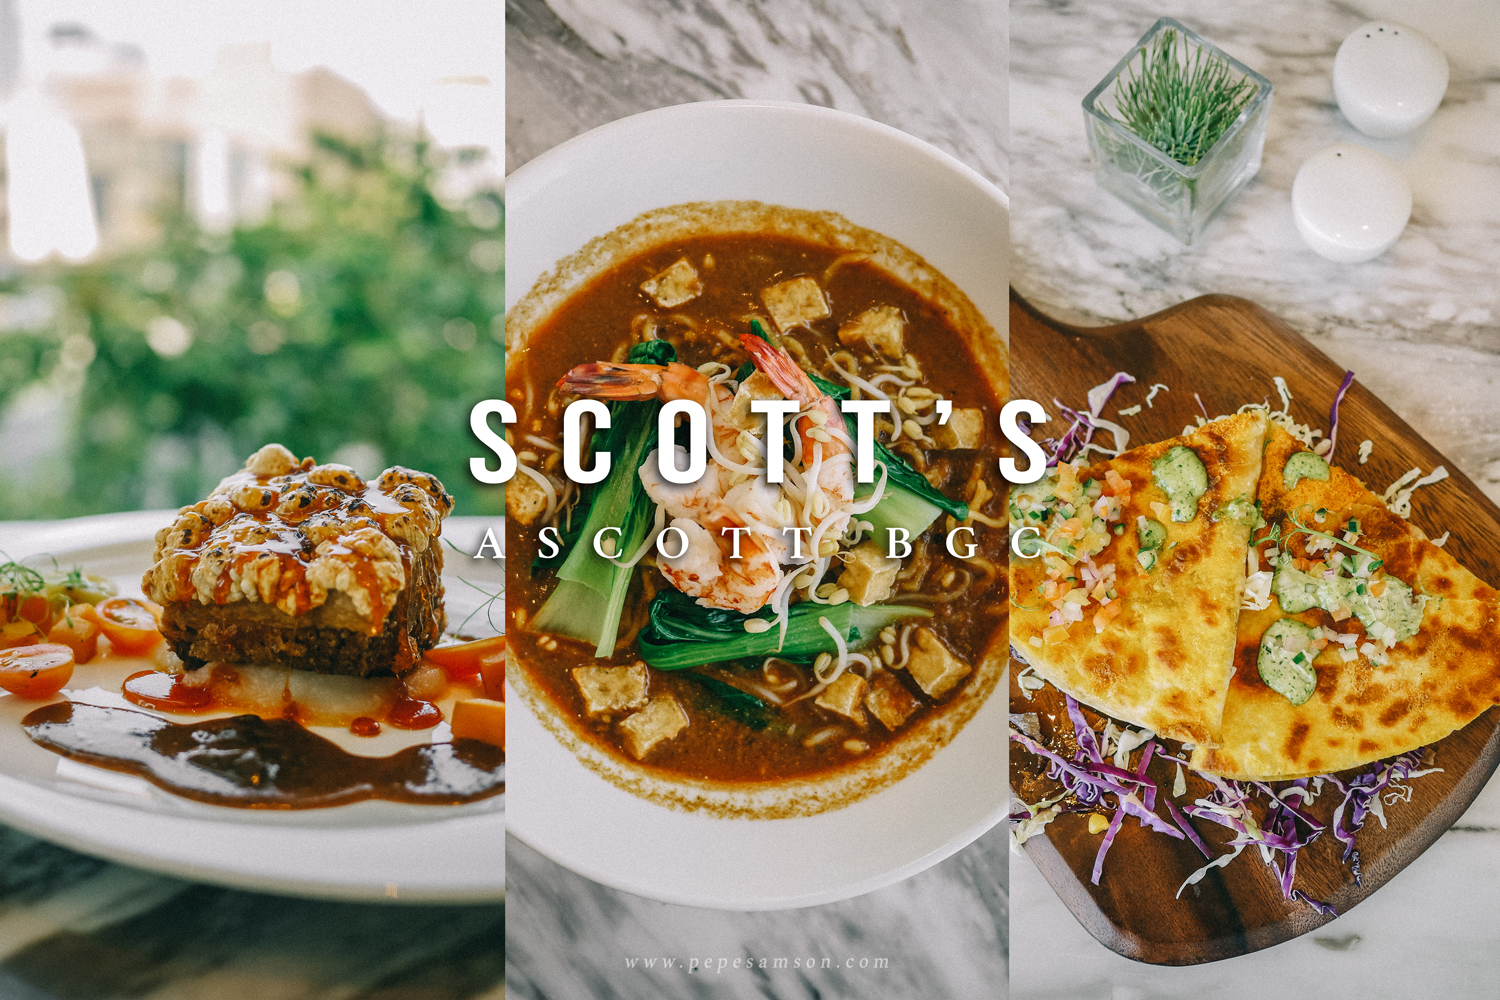 It's All About Comfort Food at Scott's in Ascott BGC